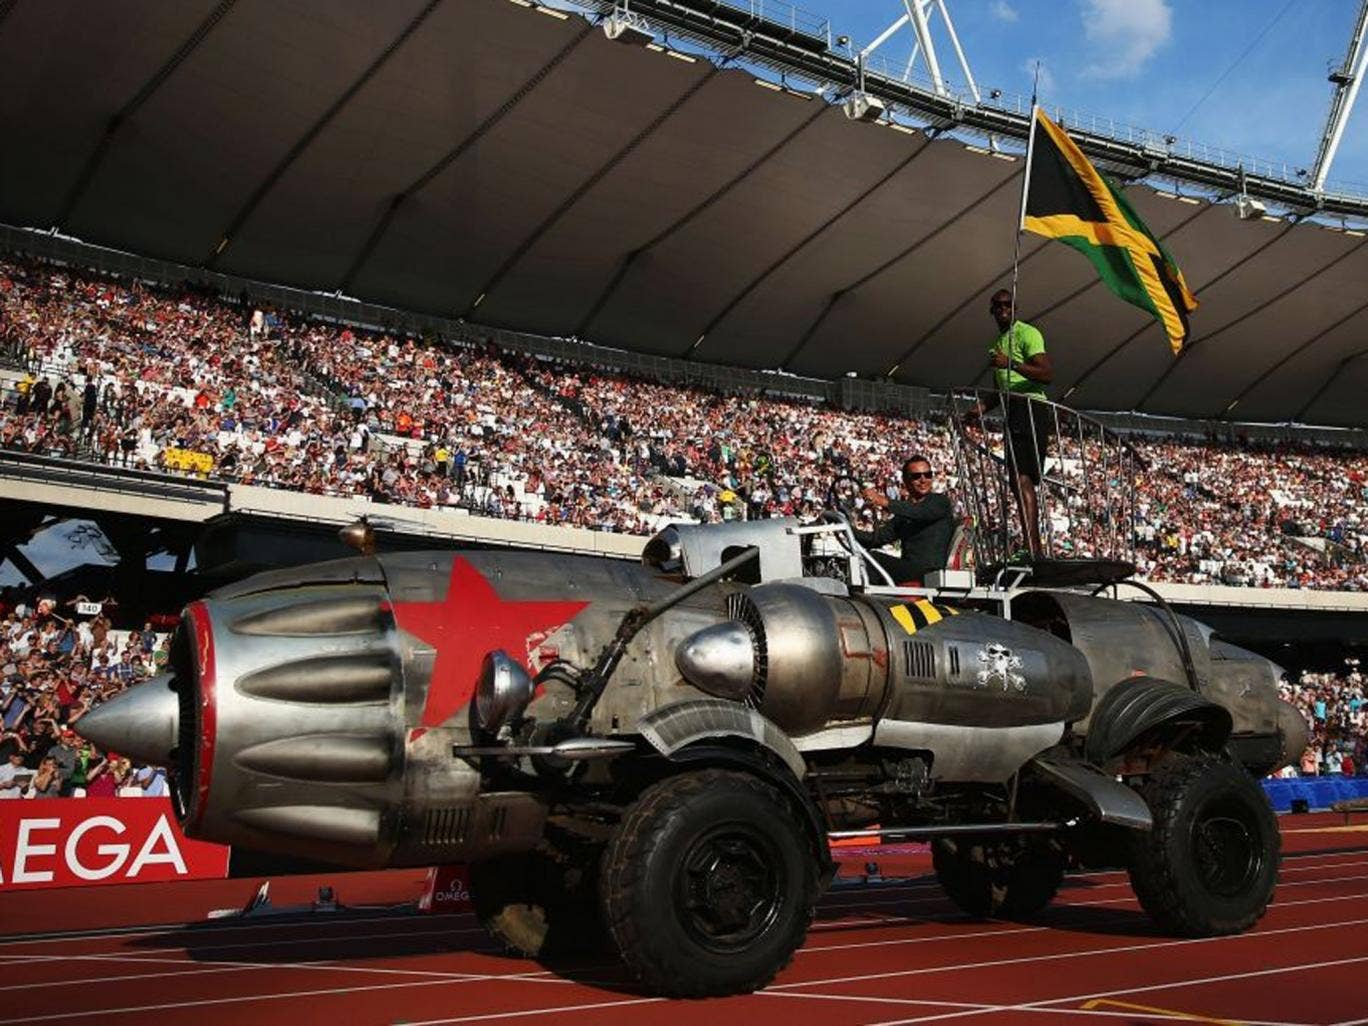 Usain Bolt with a Jamaica flag arrives in the Olympic Stadium in typically flamboyant style aboard a jet engine car